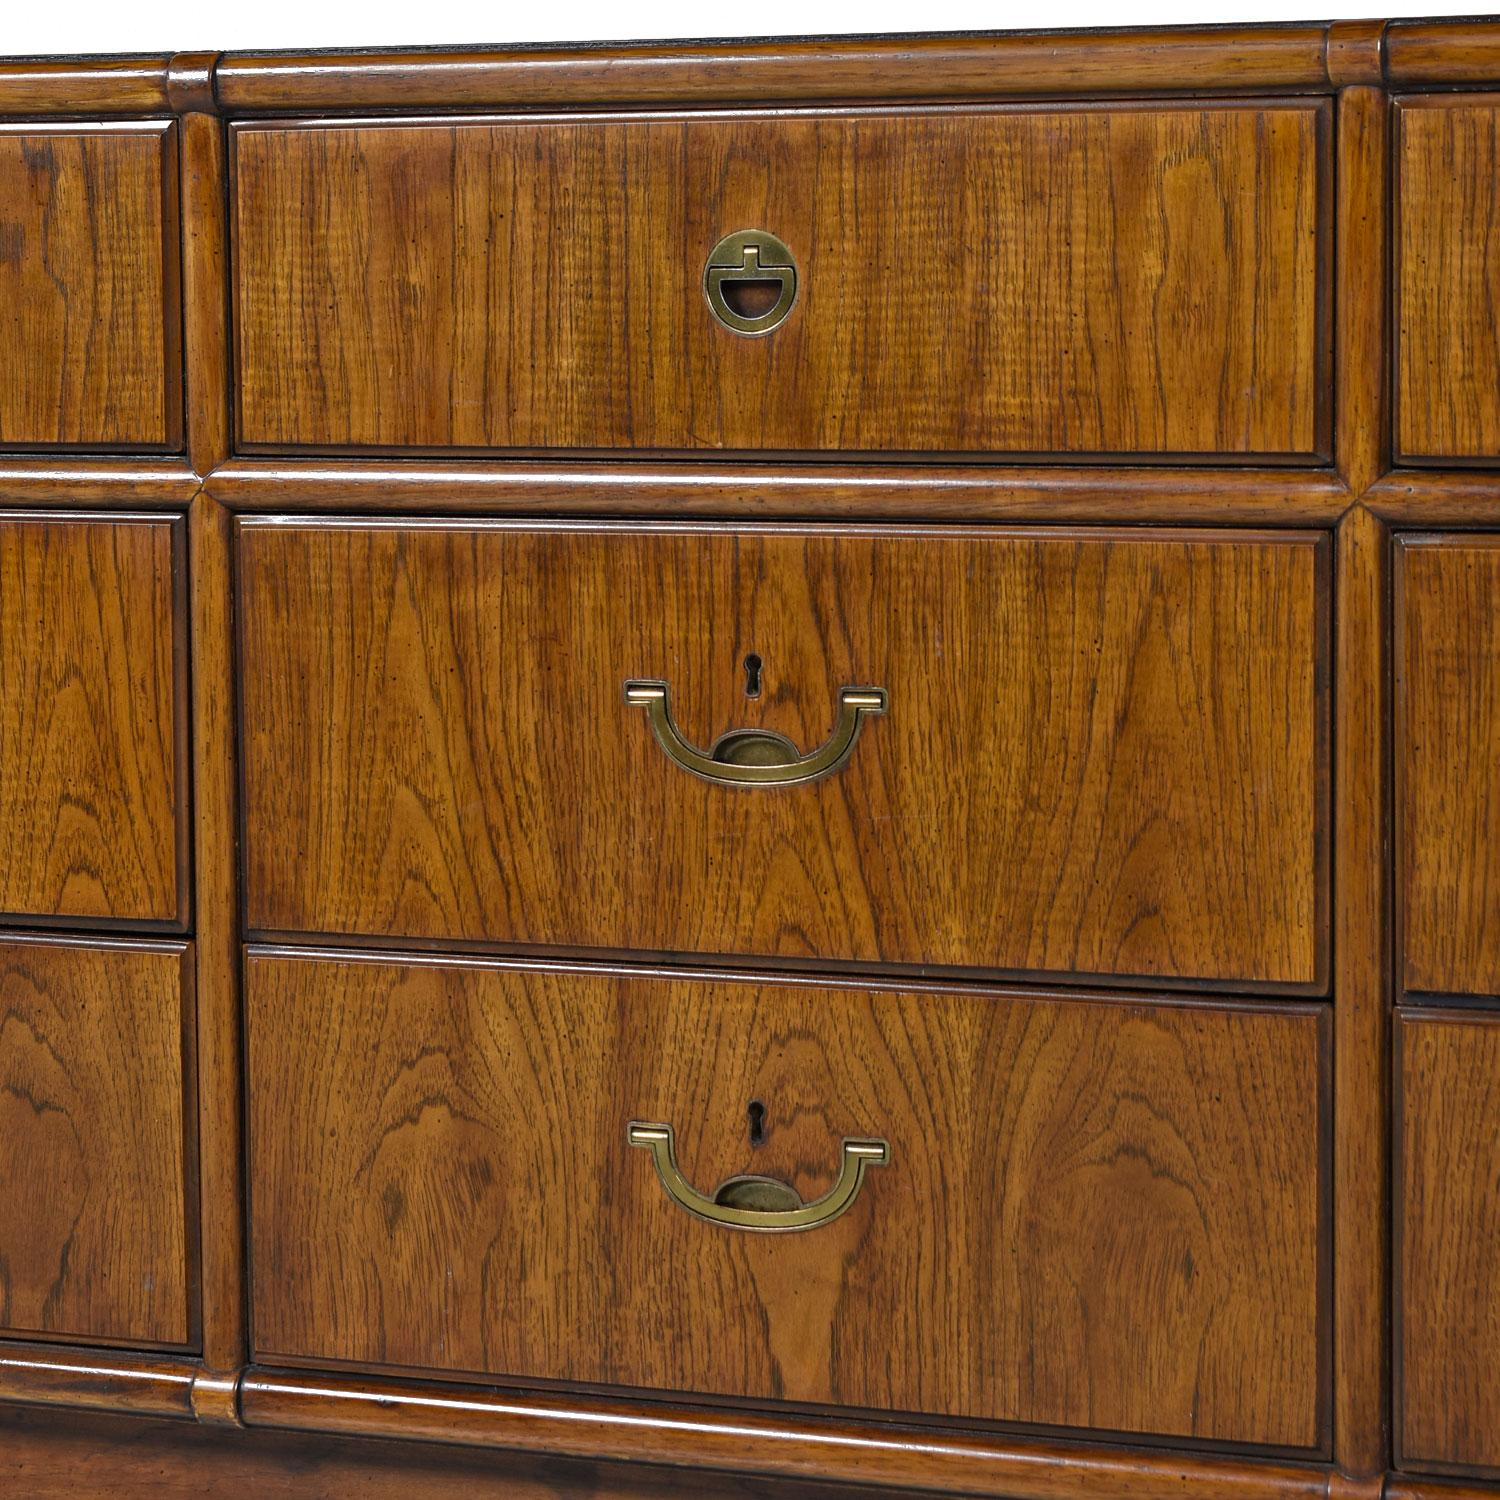 Drexel Heritage Accolade Campaign Style Brass Accent Dresser Chest of  Drawers